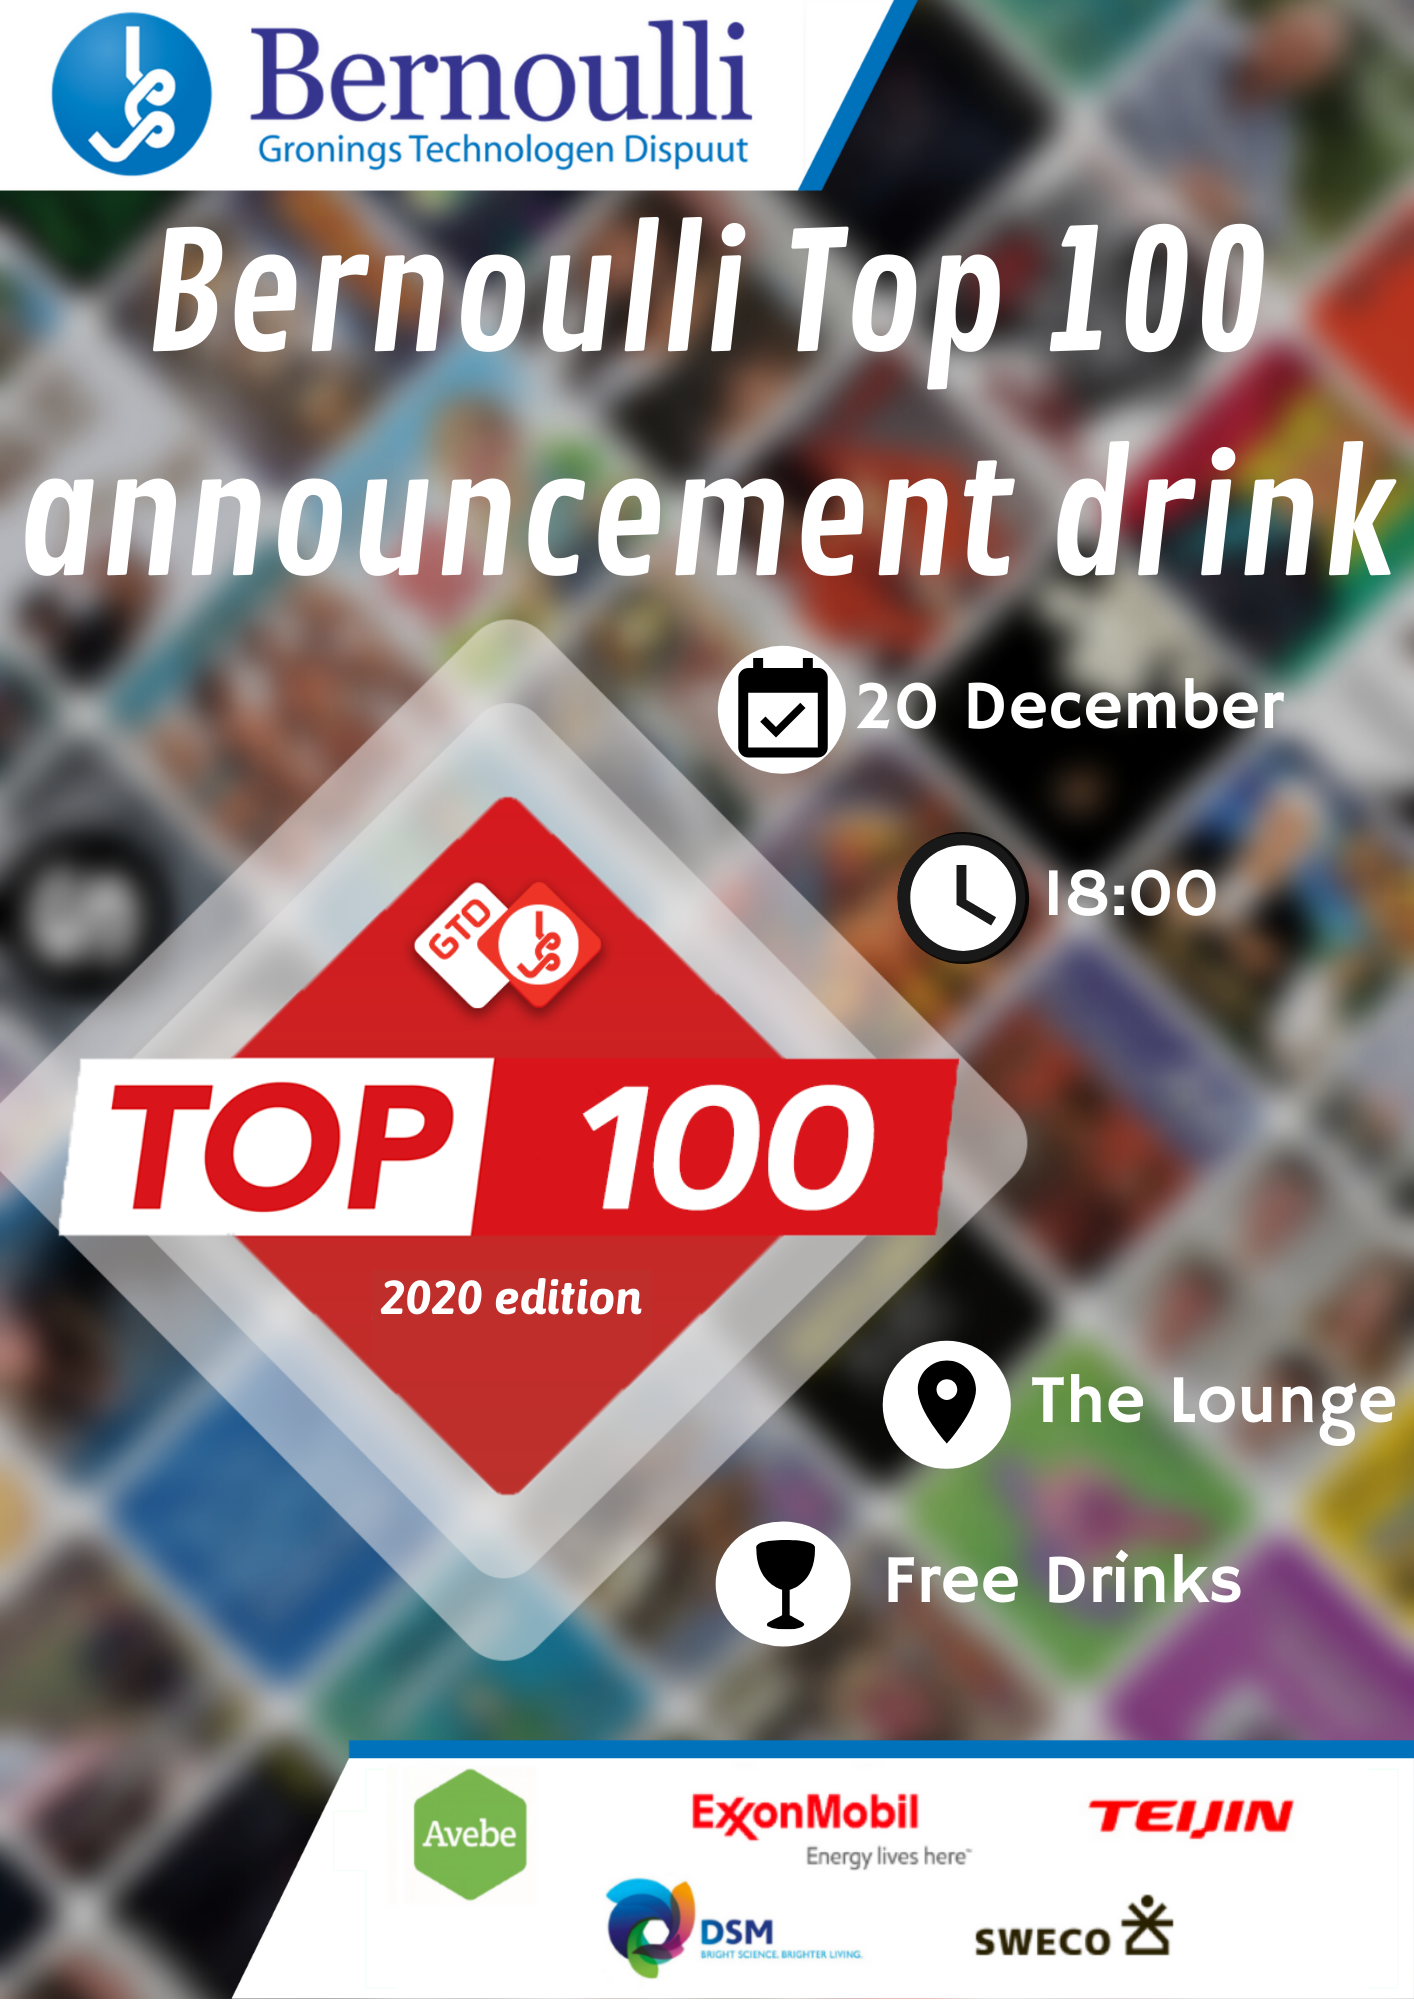 Top 100 Announcement Drink